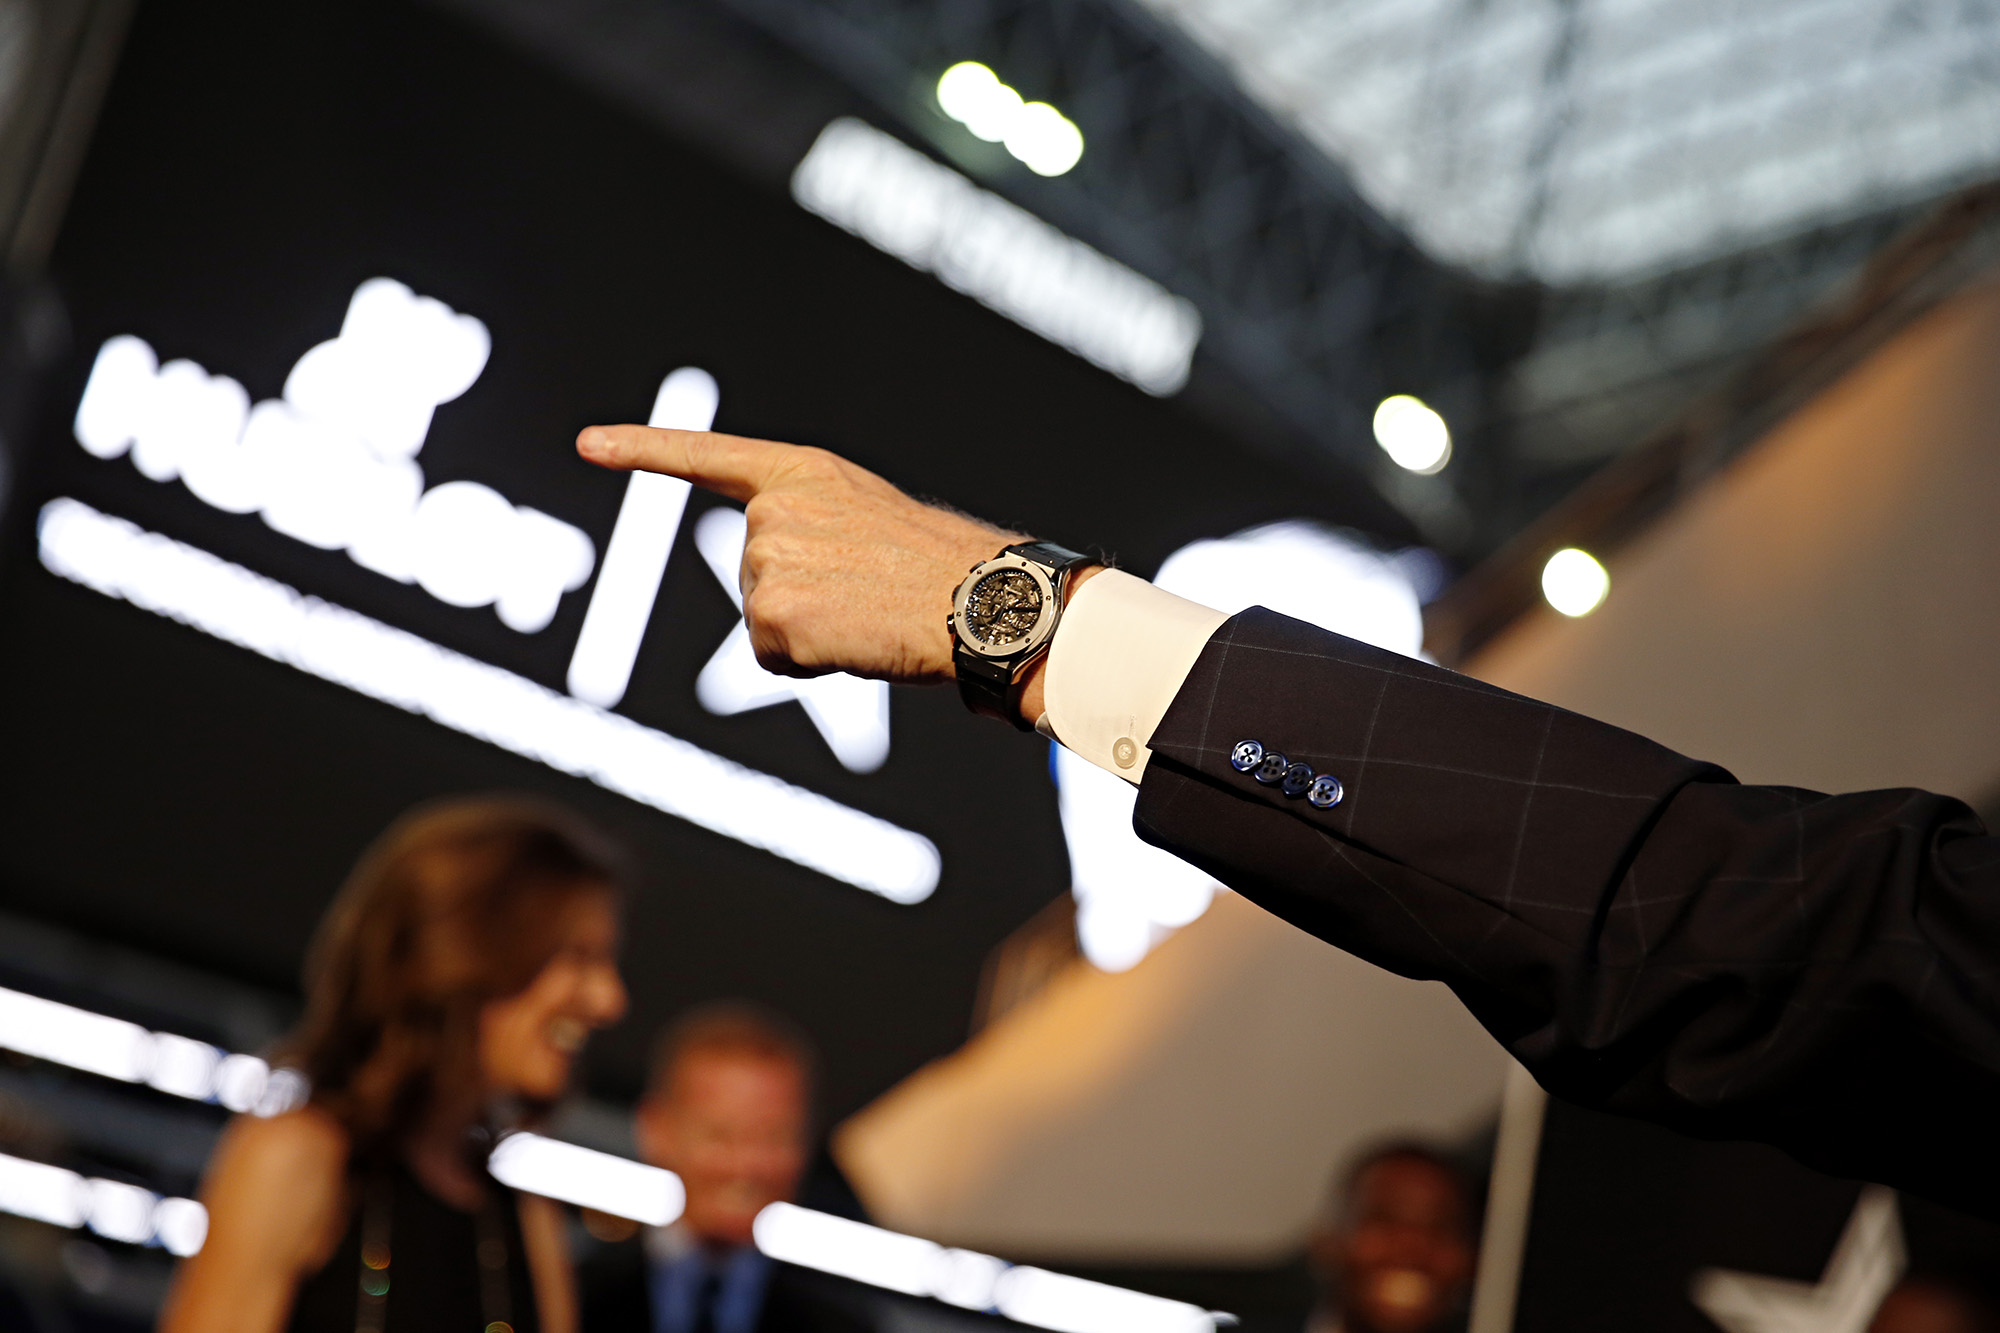 Dallas Cowboys owner Jerry Jones wears as a Hublot watch as he points during a Hublot and Dallas Cowboys partnership/watch launch party Monday, August 25, 2014 at AT&T Stadium in Arlington, Texas.